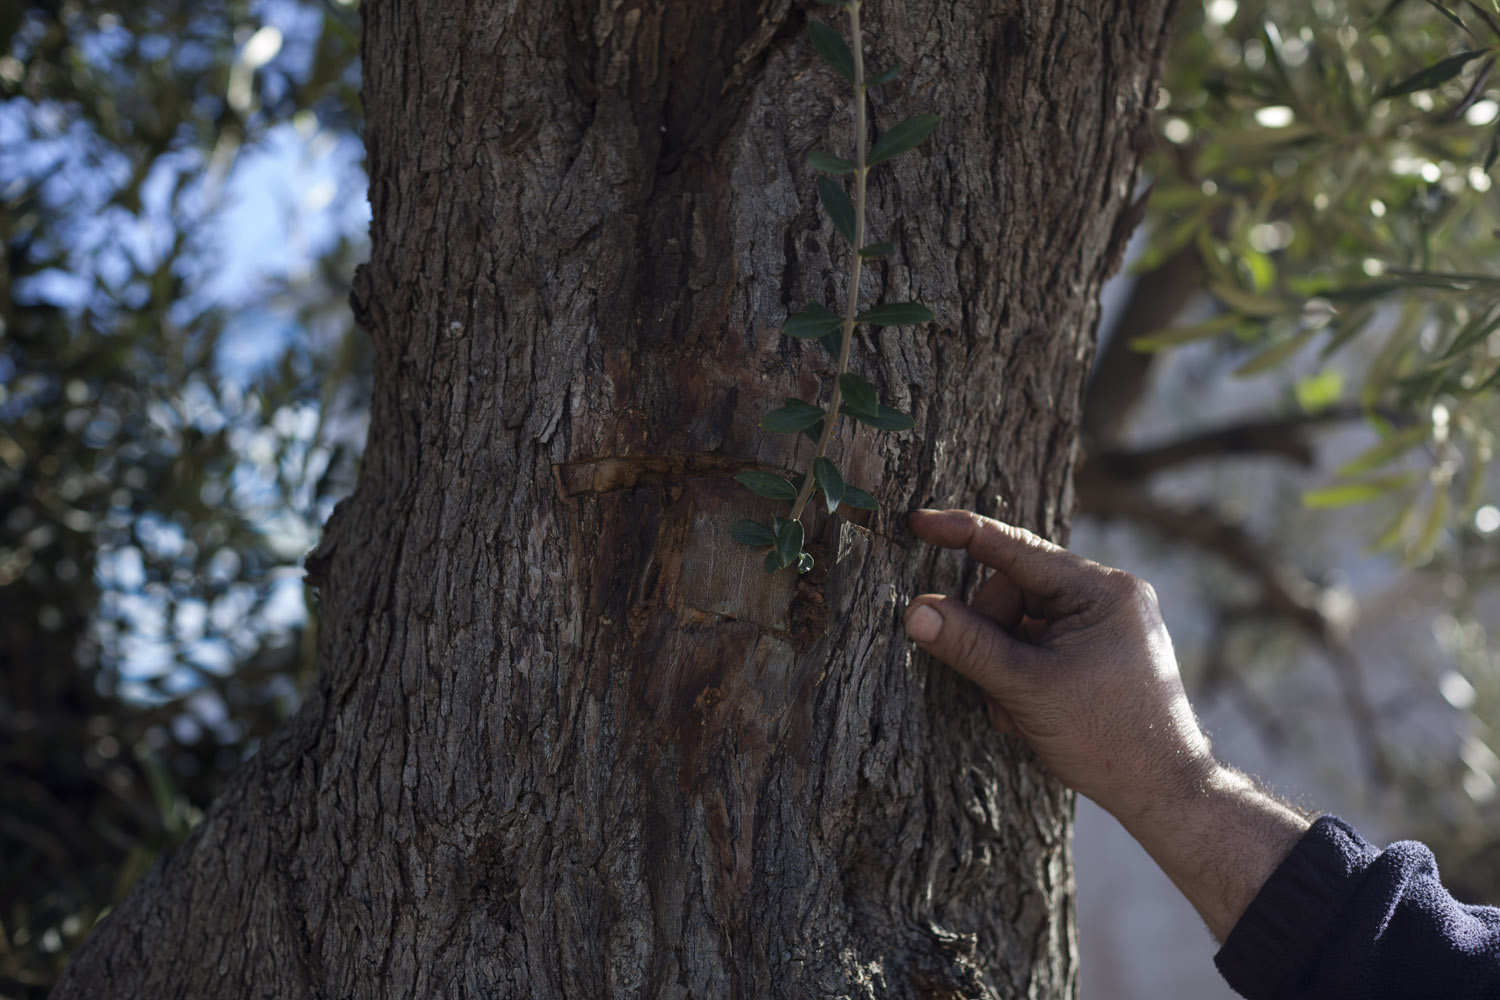 With no proven cure yet available, researchers have attempted to find varieties of olive trees that show some resistance to Xylella fastidiosa and could be grafted on Puglia's centuries-old olive trees in an attempt to save such an important element of the landscape. (2017)